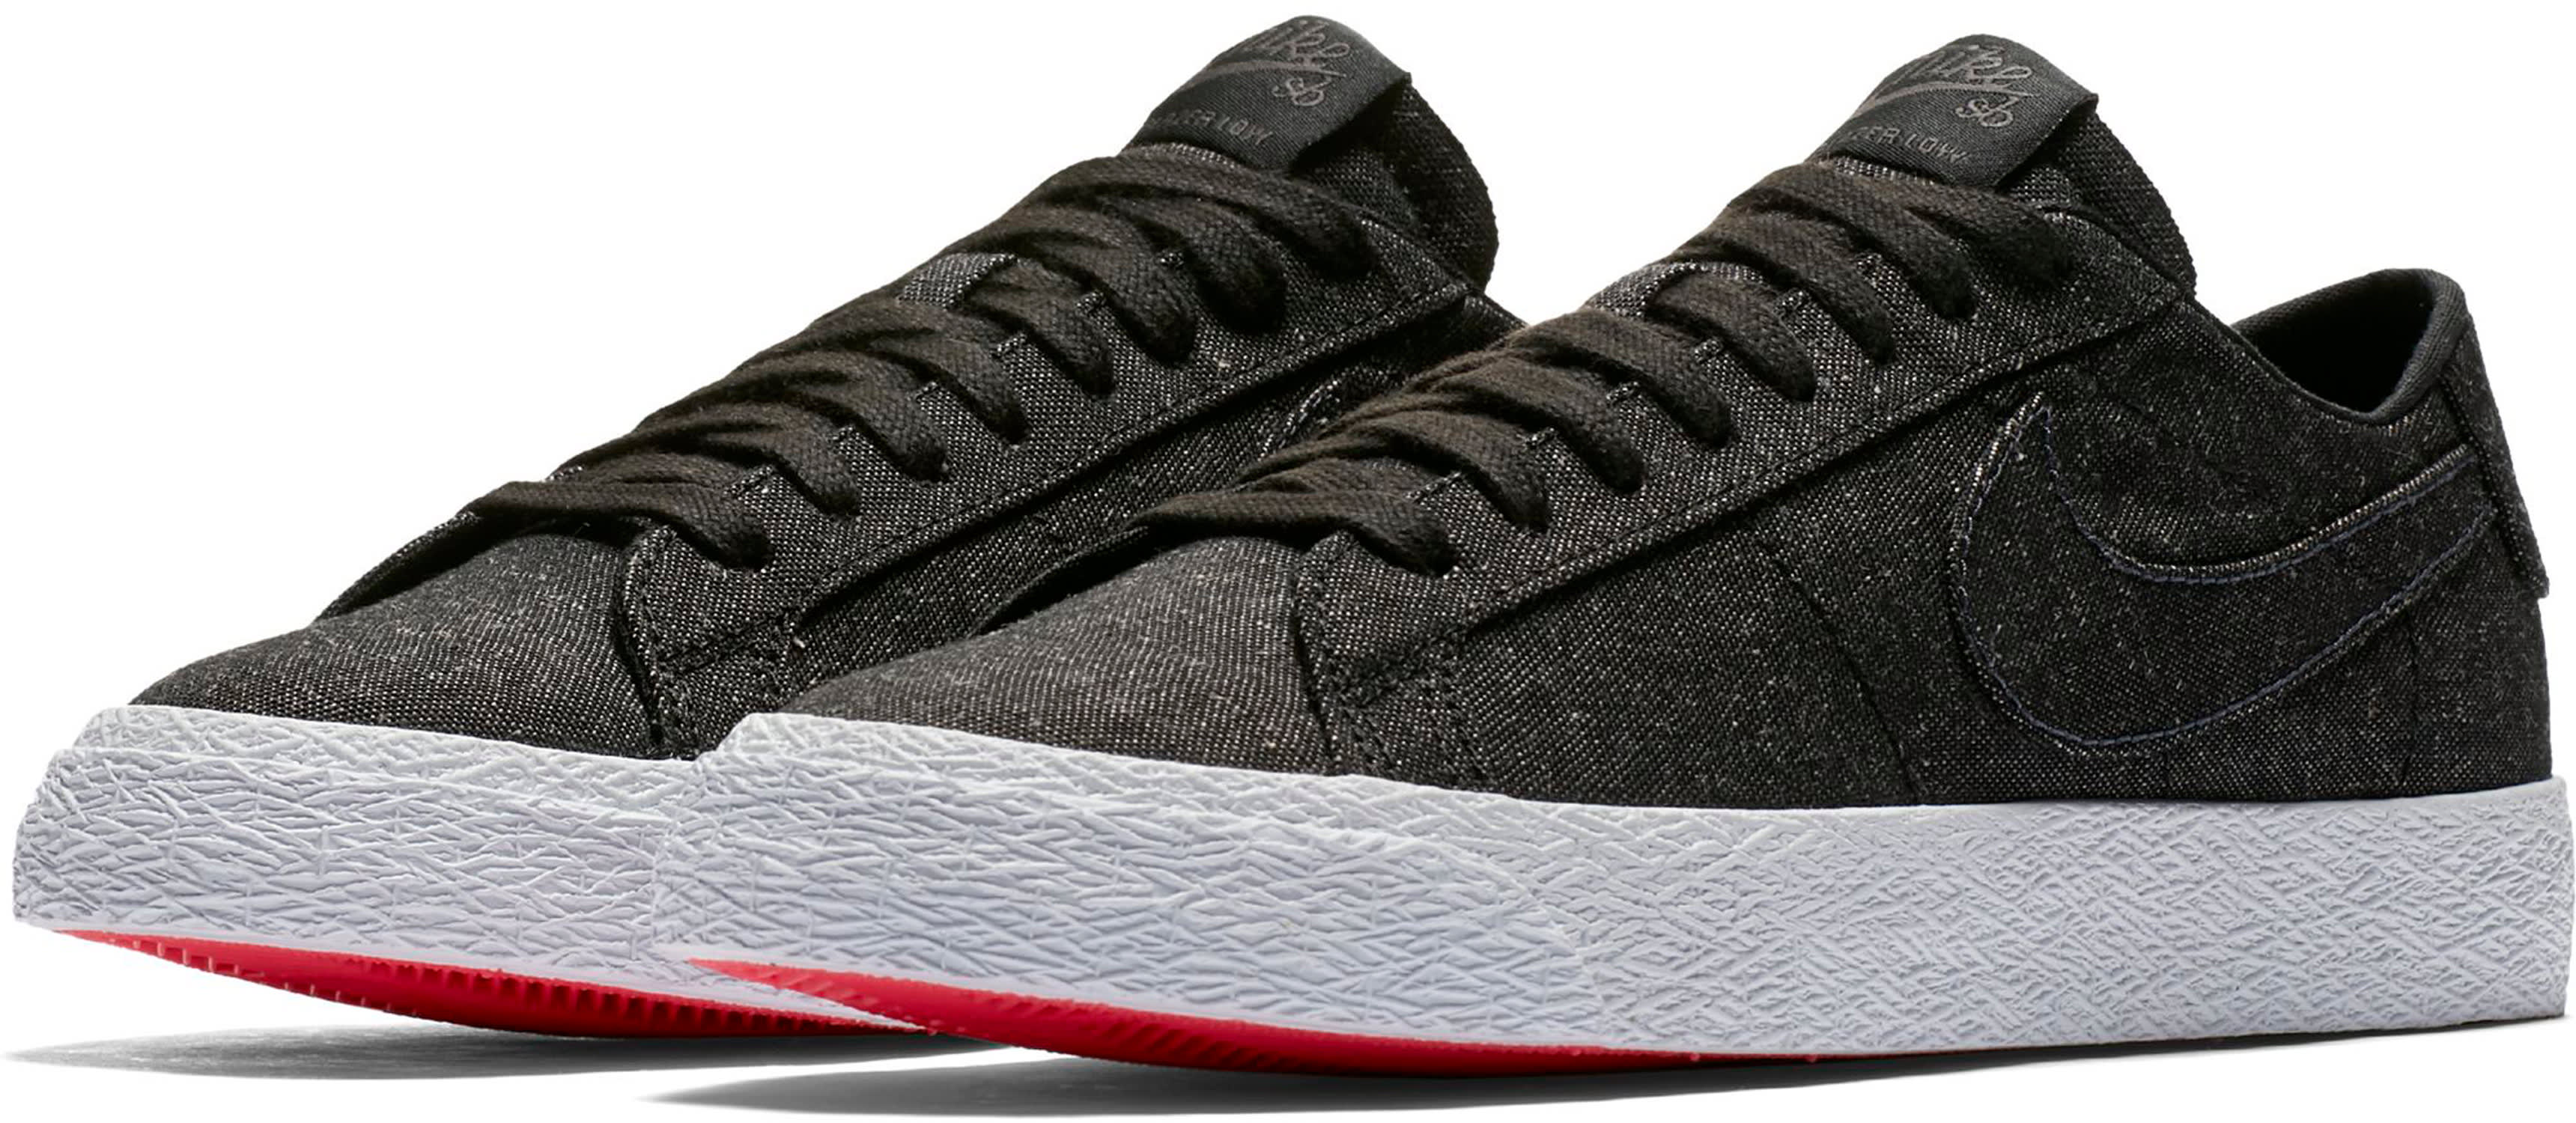 promo code b9ead 8e66f Nike SB Zoom Blazer Low Canvas Deconstructed Skate Shoes - thumbnail 3